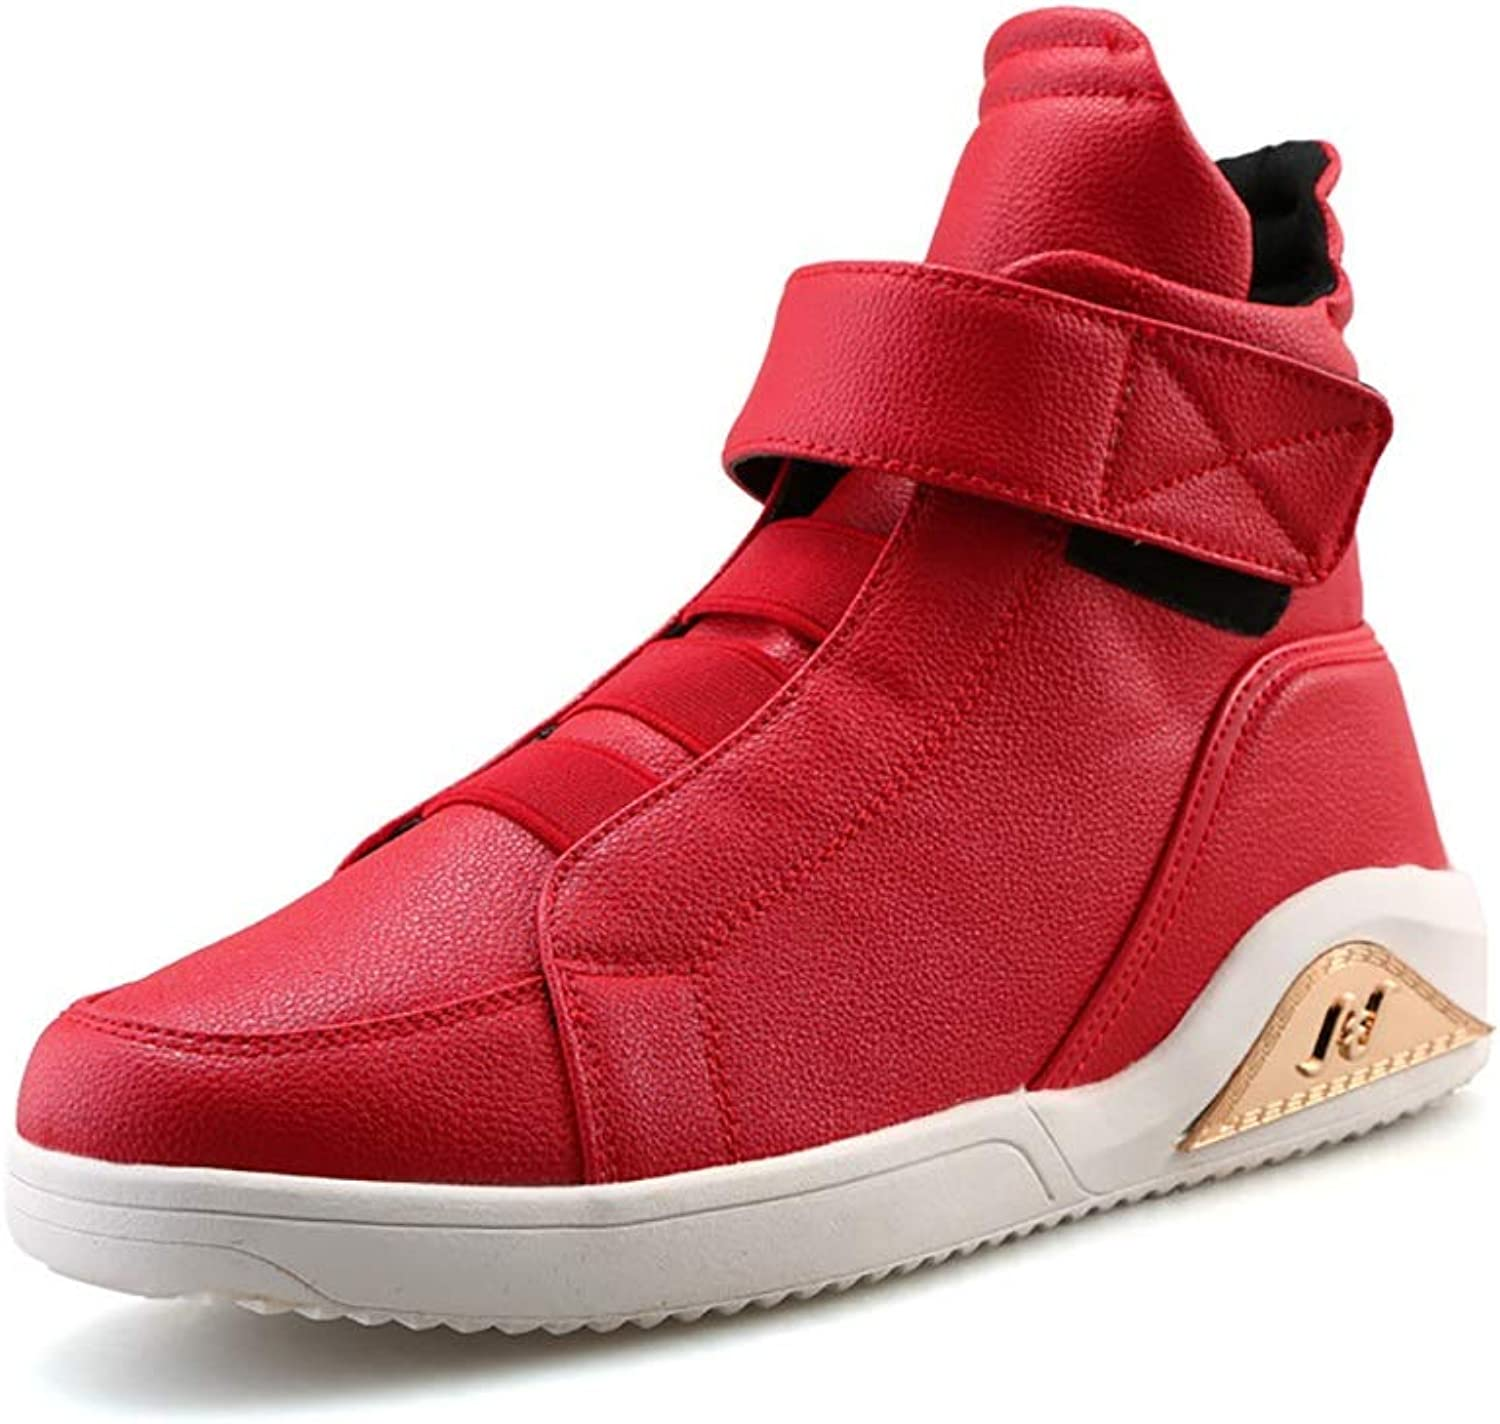 Y-H Men's Casual shoes Spring Fall Artificial PU High-top Personality Comfort Boots Casual Running shoes Tide Flow Stylish Deck shoes Walking shoes Travel shoes White Red  Black